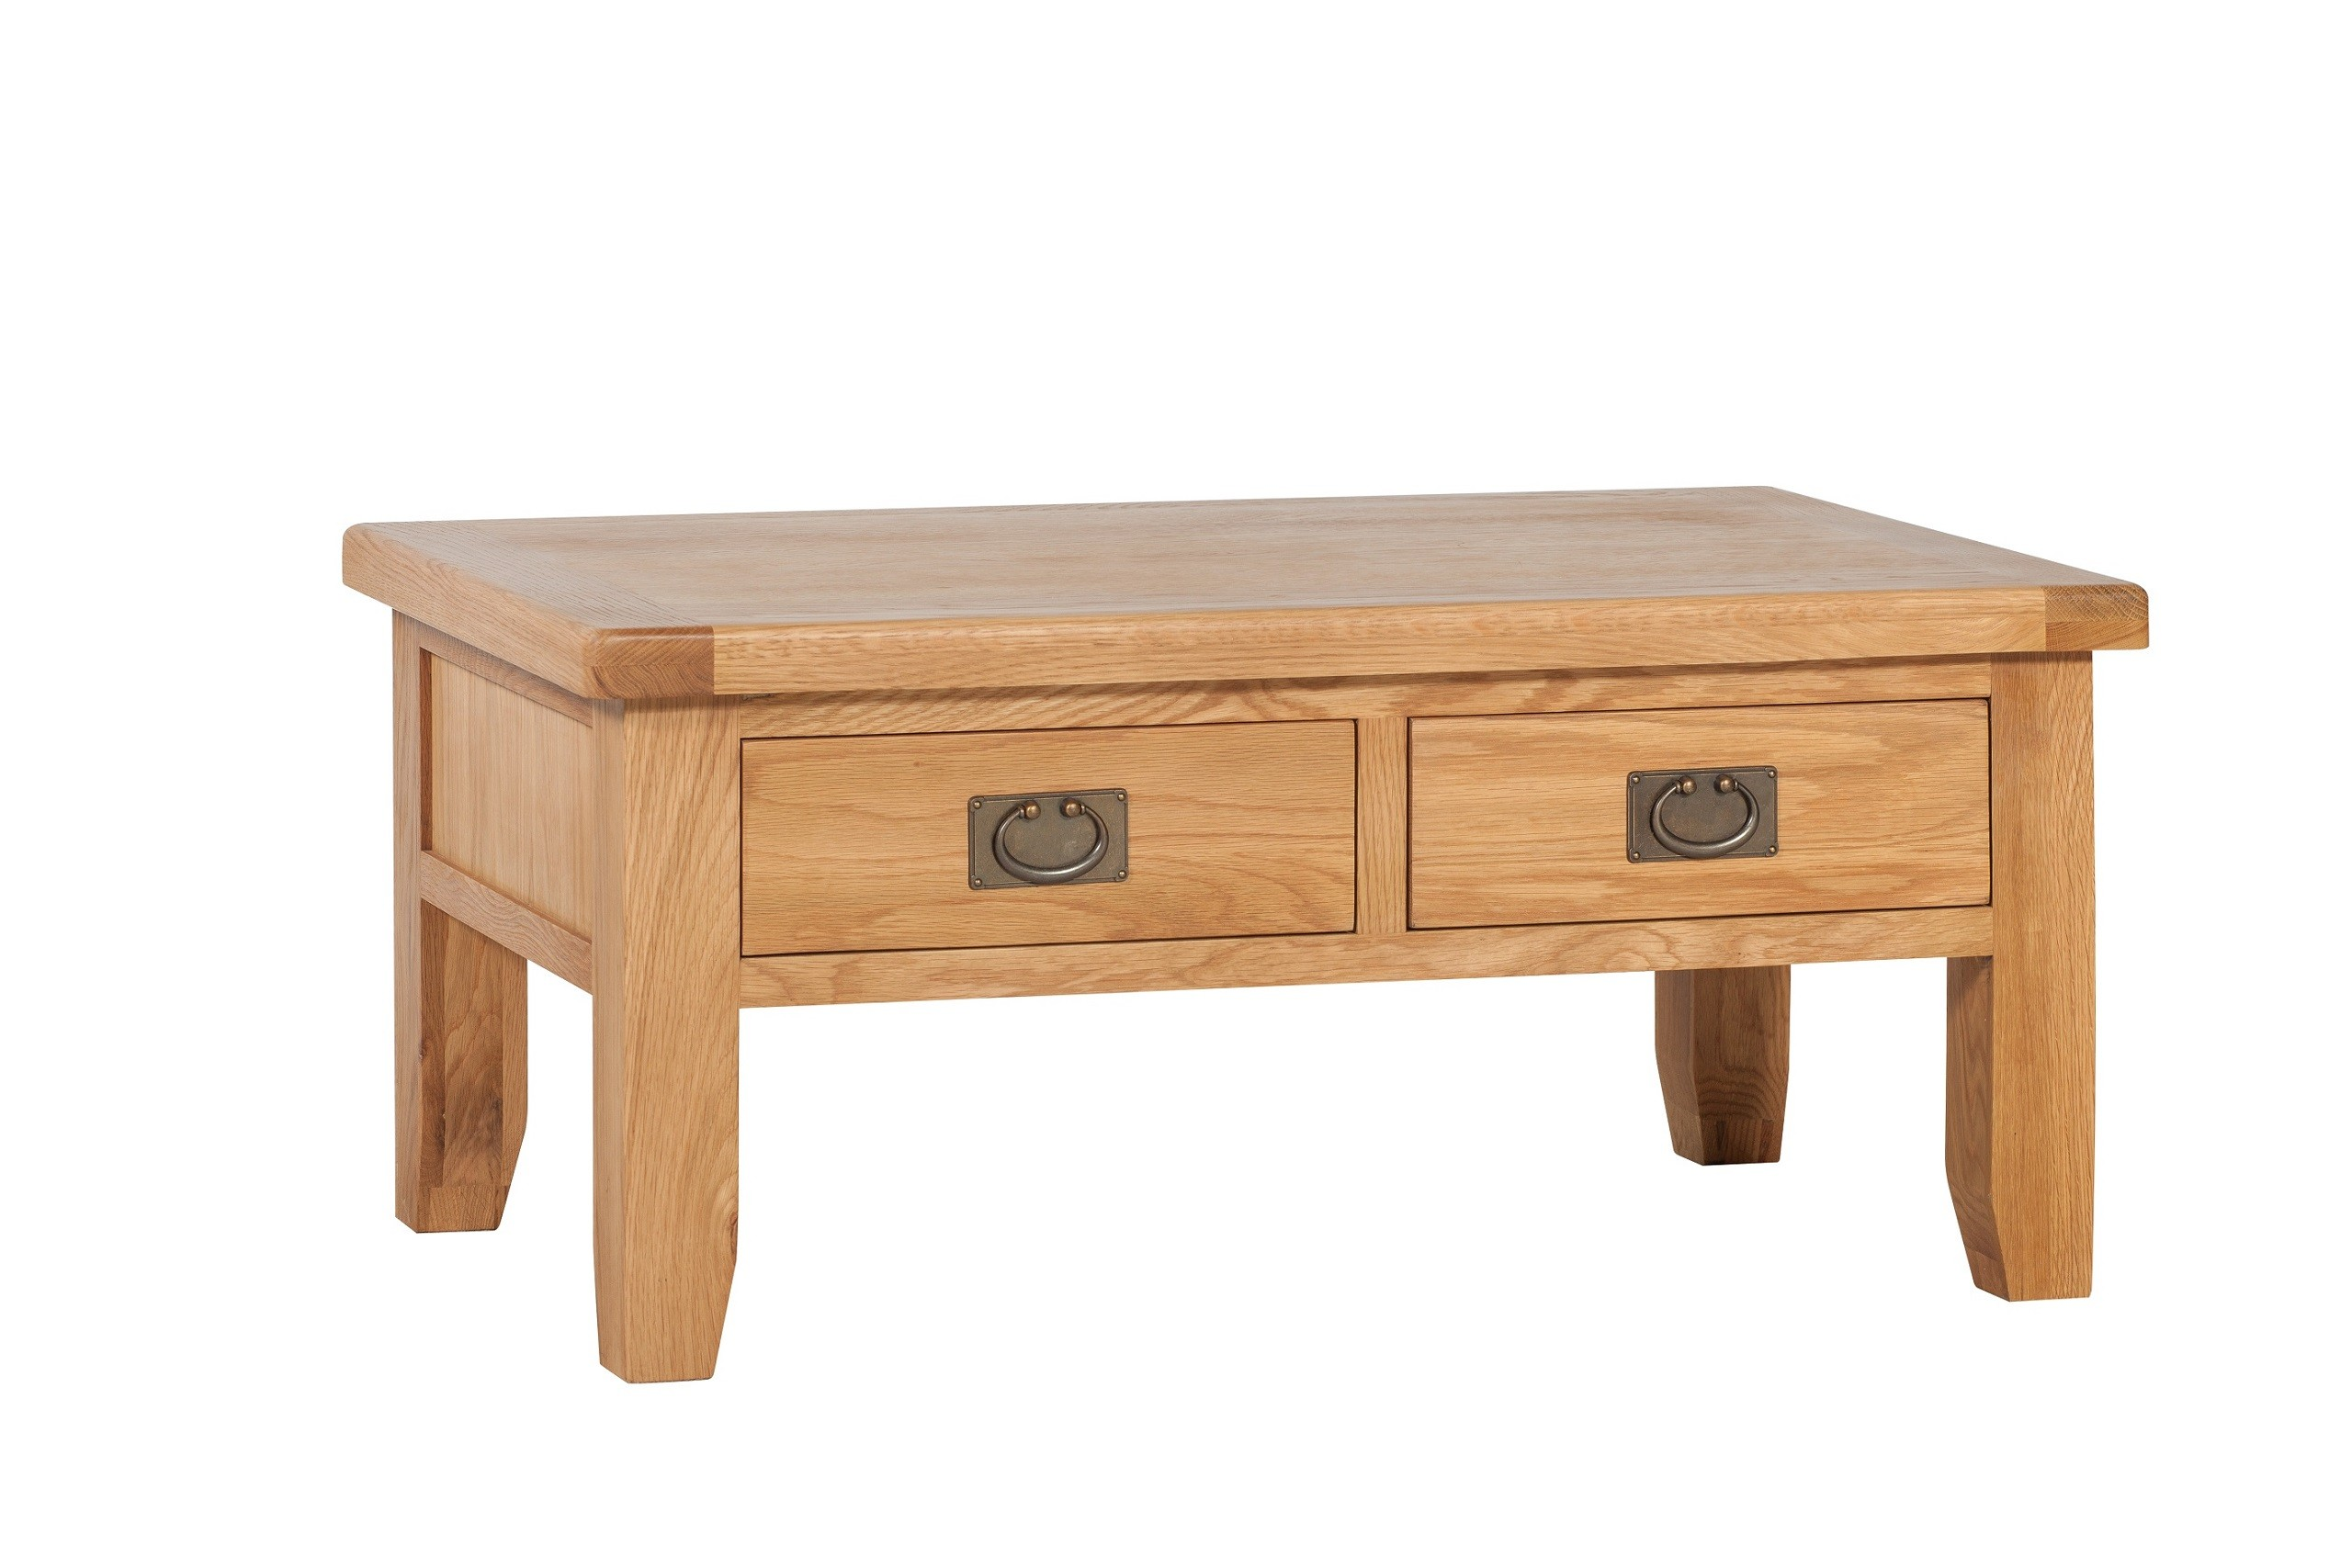 Hamilton coffee table warehouse prestwich warehouse for Table th width ignored